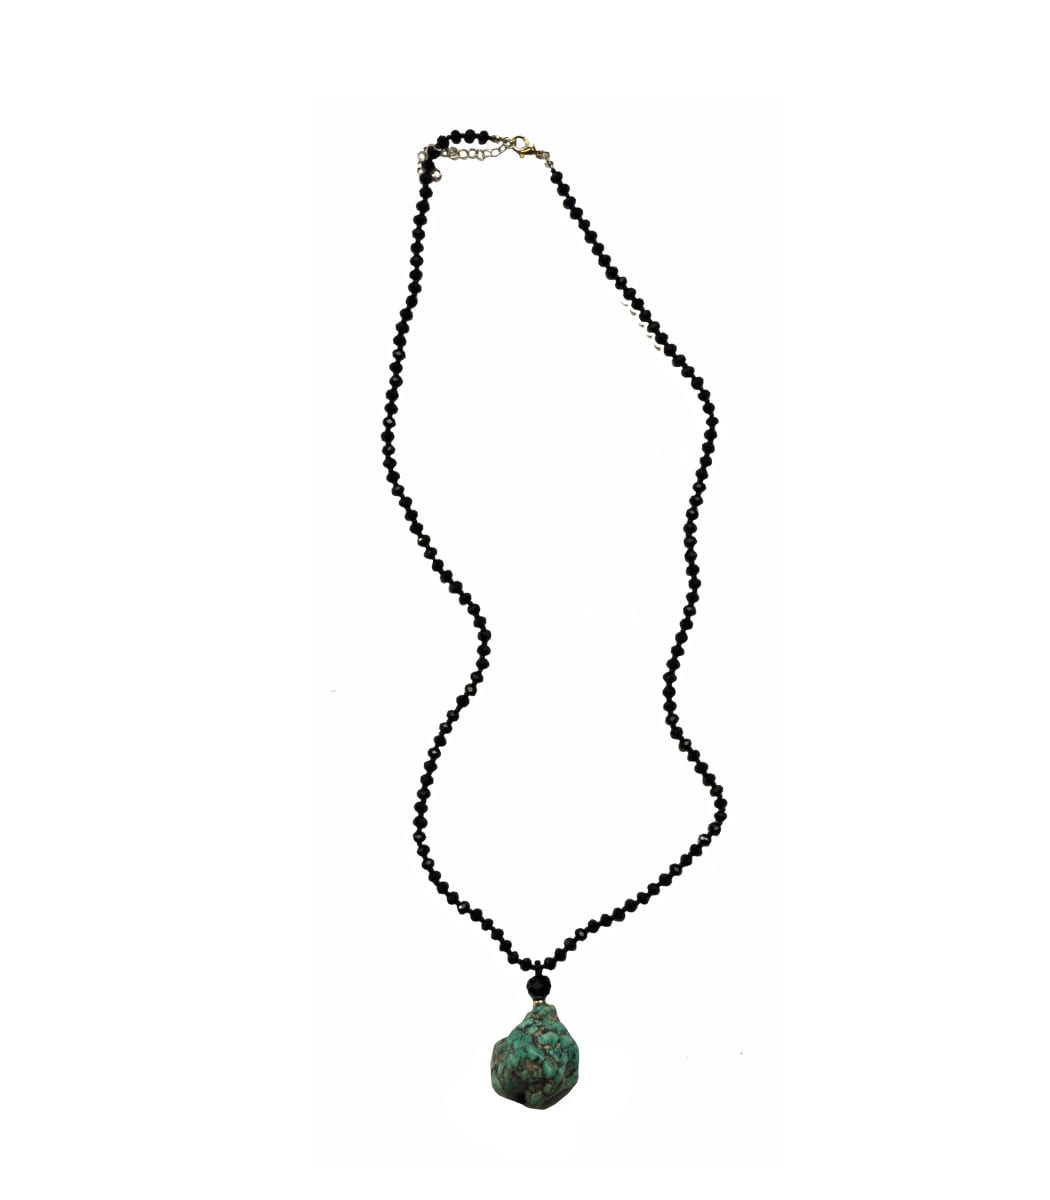 Crystal turquoise stone necklace